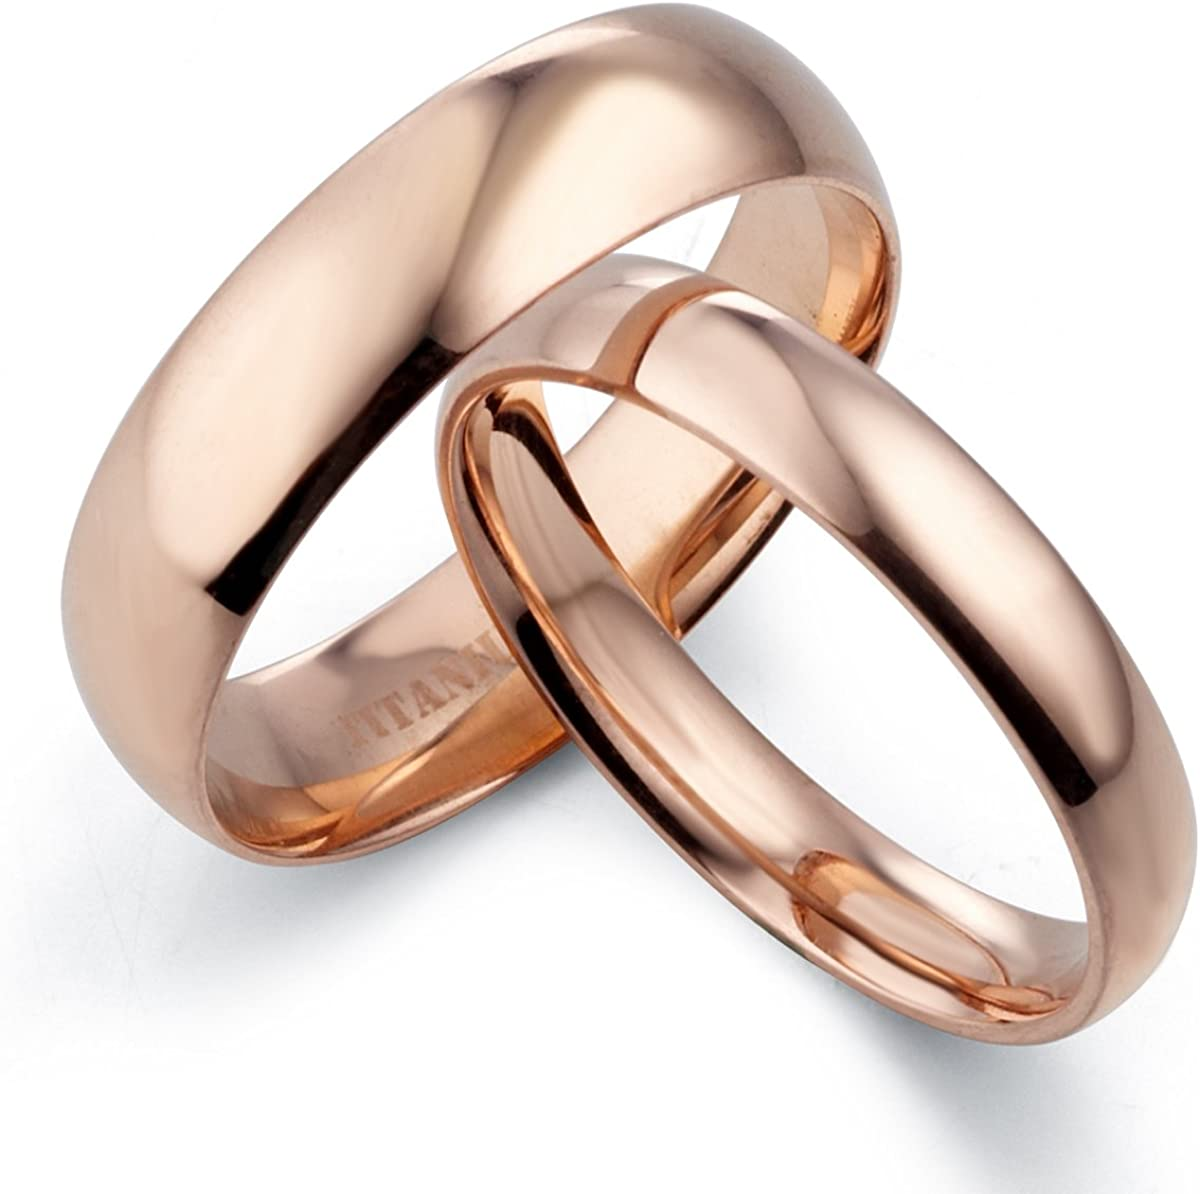 7.5 Women Ring Size Gemini His /& Hers Dome Comfort Fit Rose Gold Promise Wedding Titanium Ring Set Width 6mm /& 4mm Men Ring Size 11